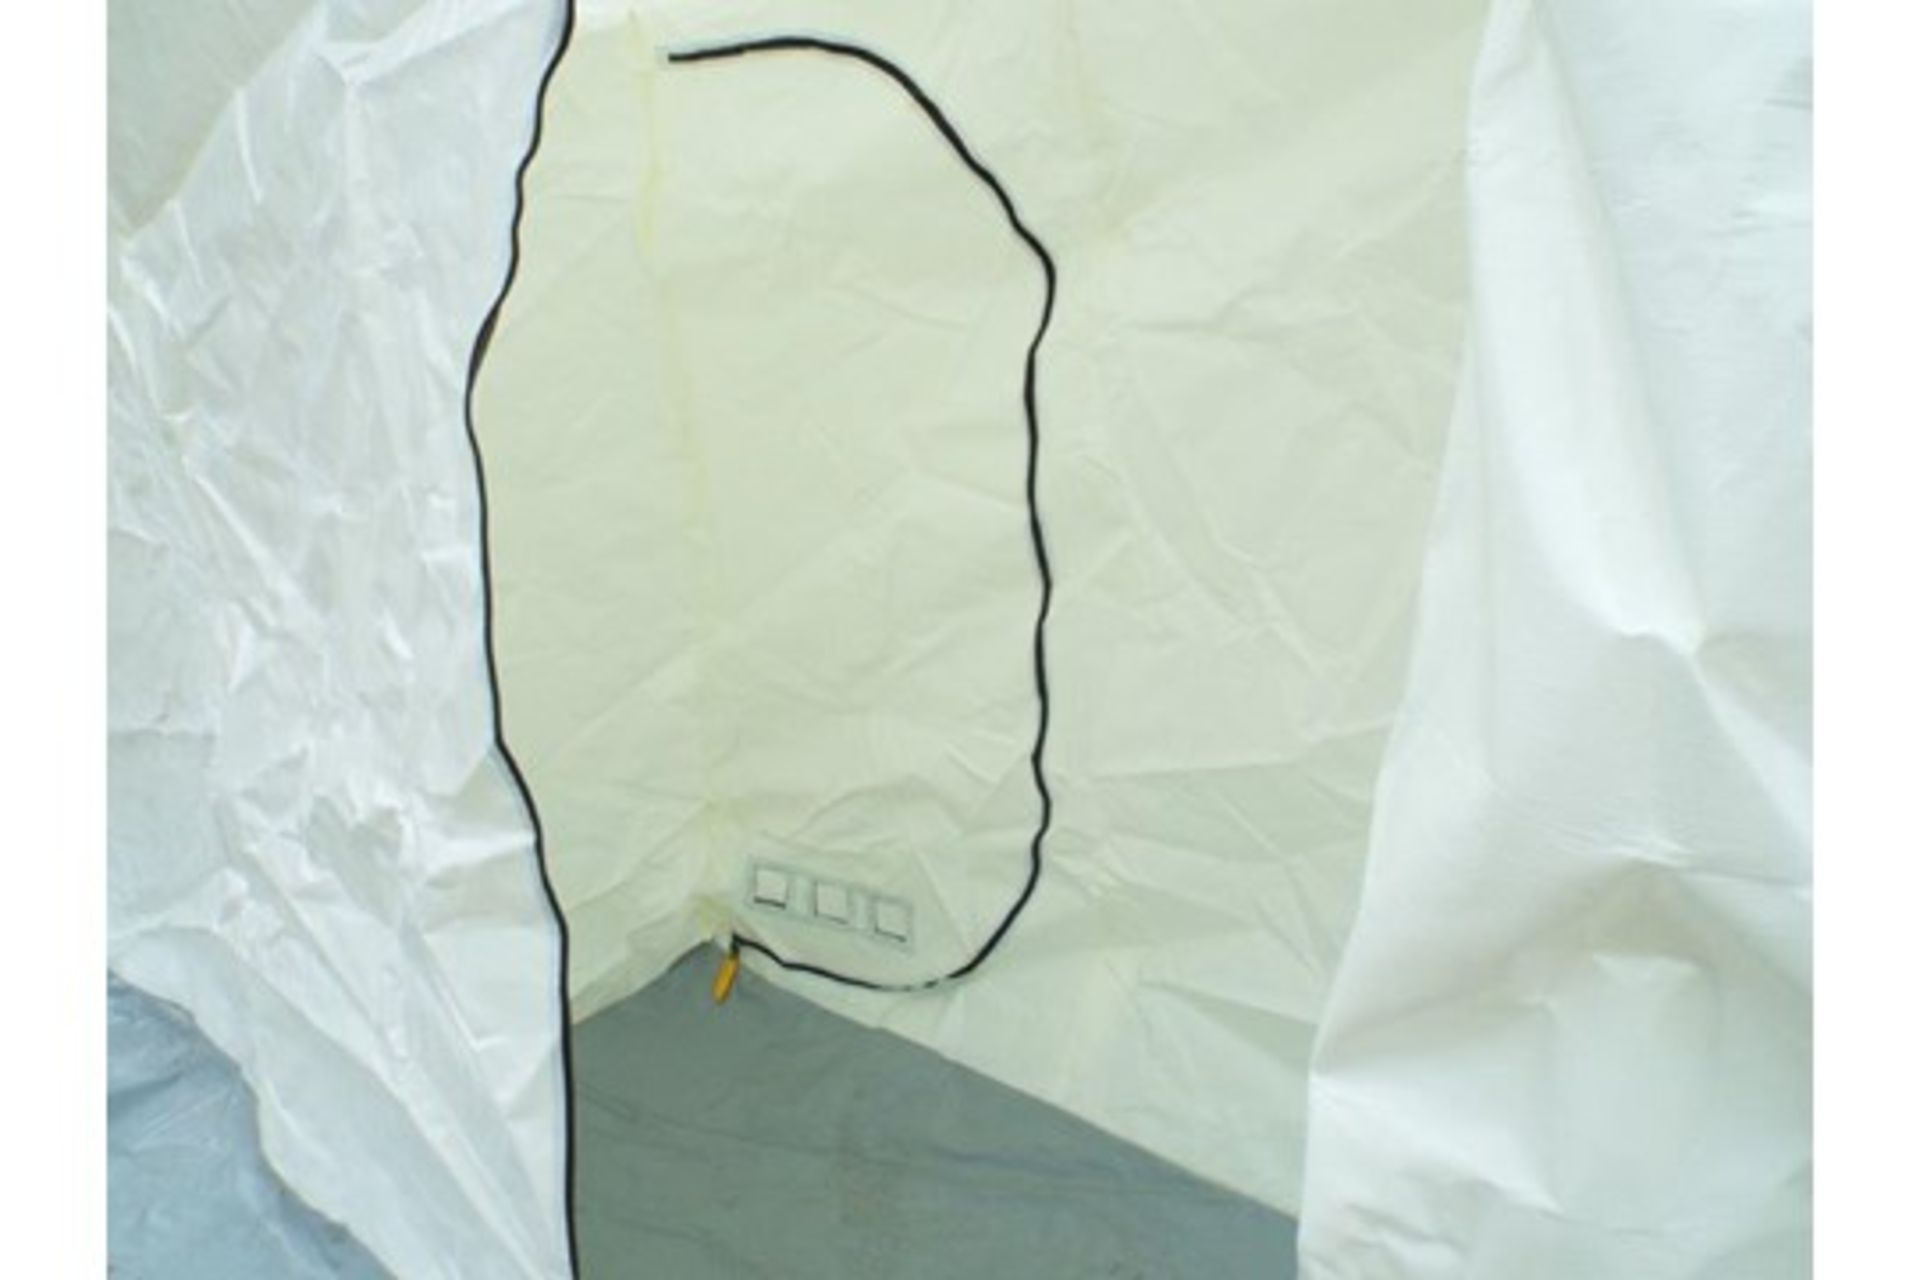 Lot 22 - Unissued 8mx4m Inflateable Decontamination/Party Tent